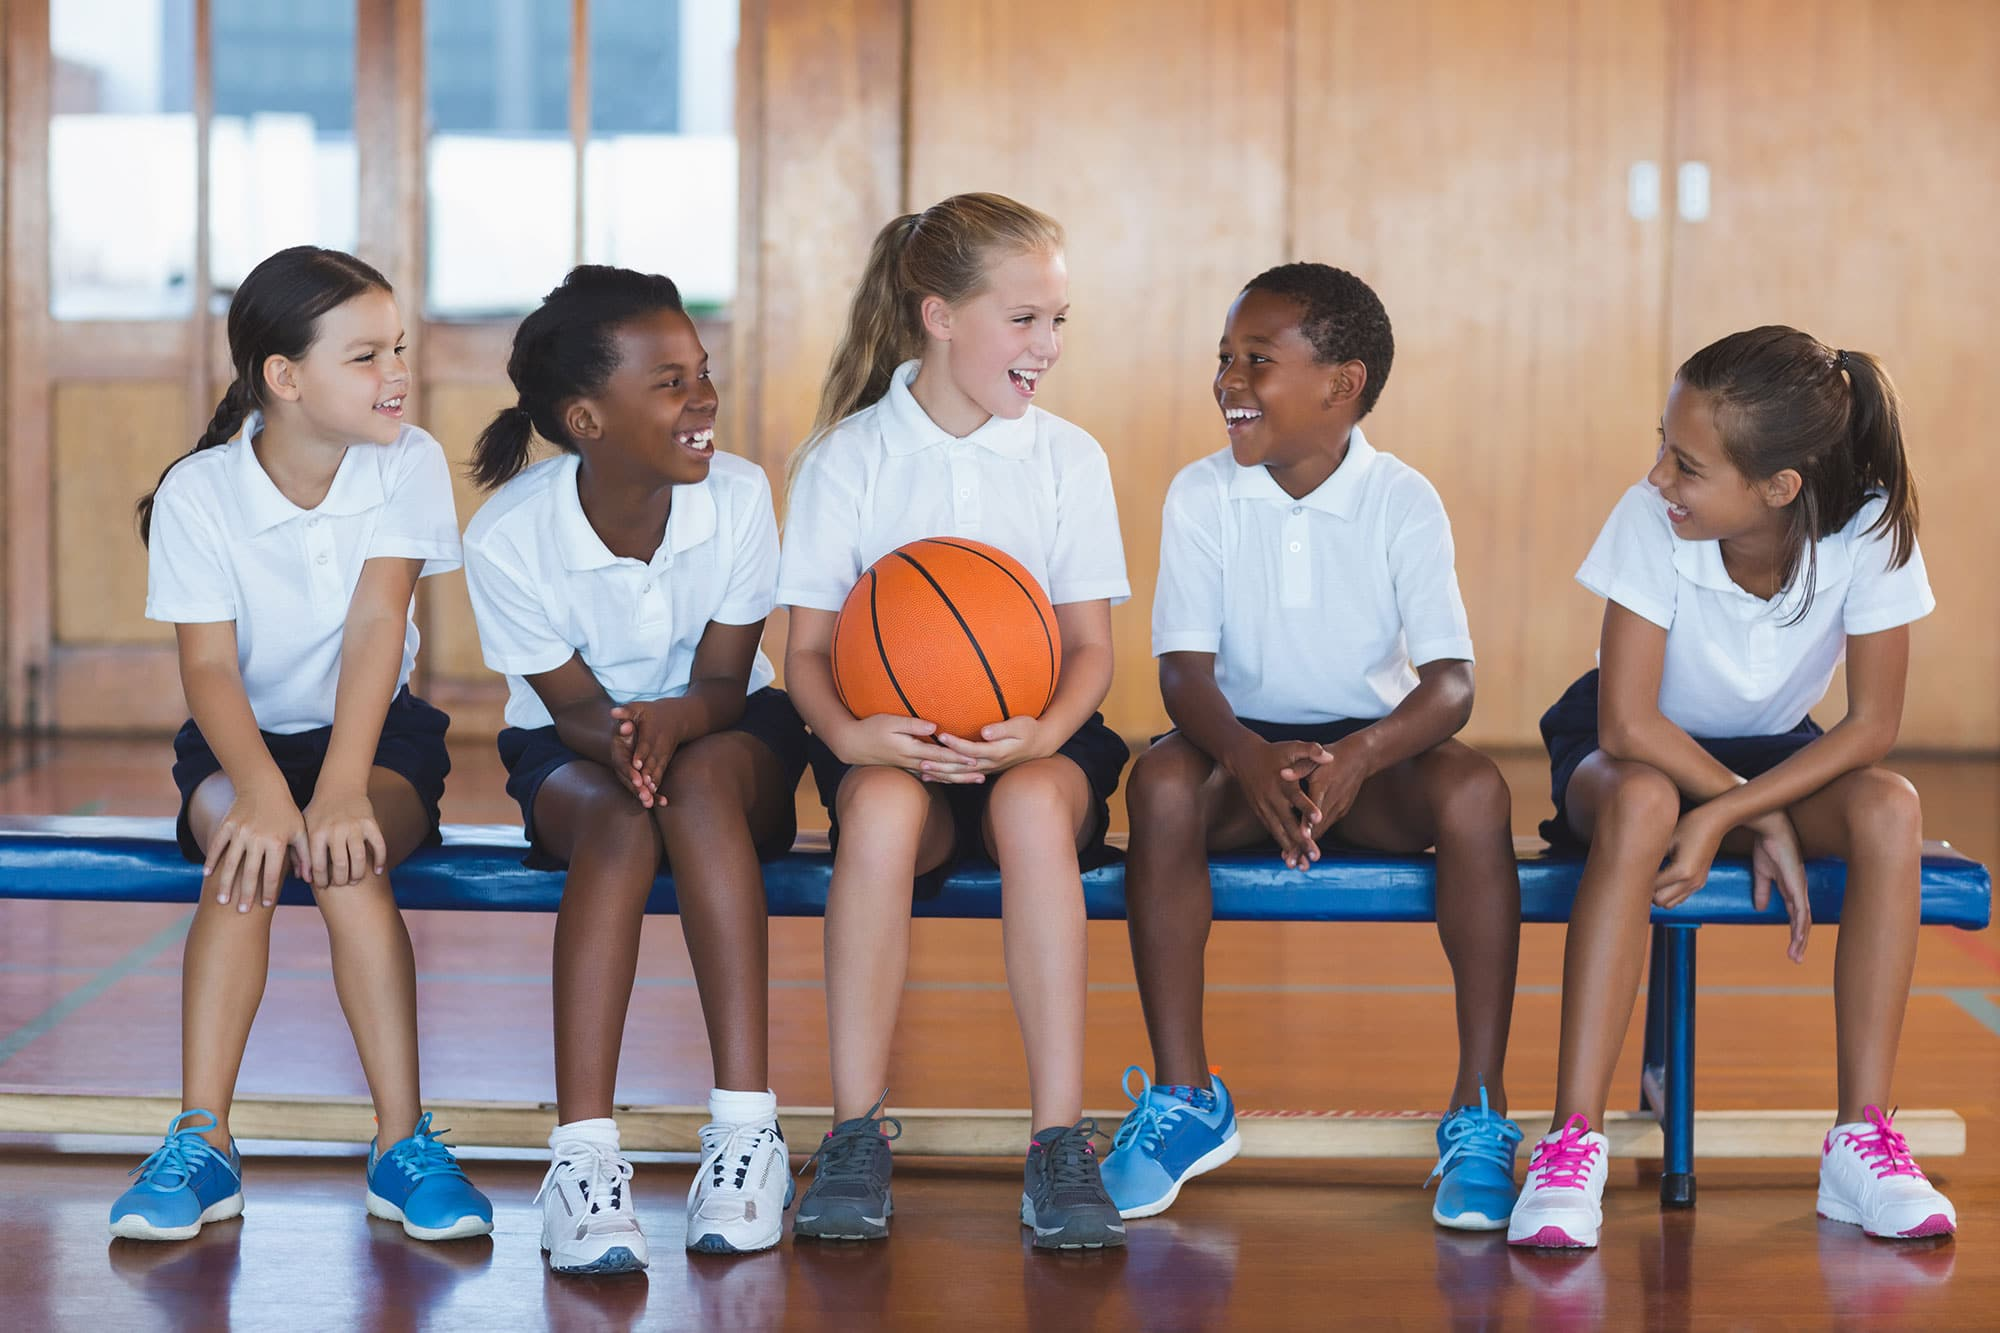 Operational update: Government guidance on extra-curricular sport during the lockdown